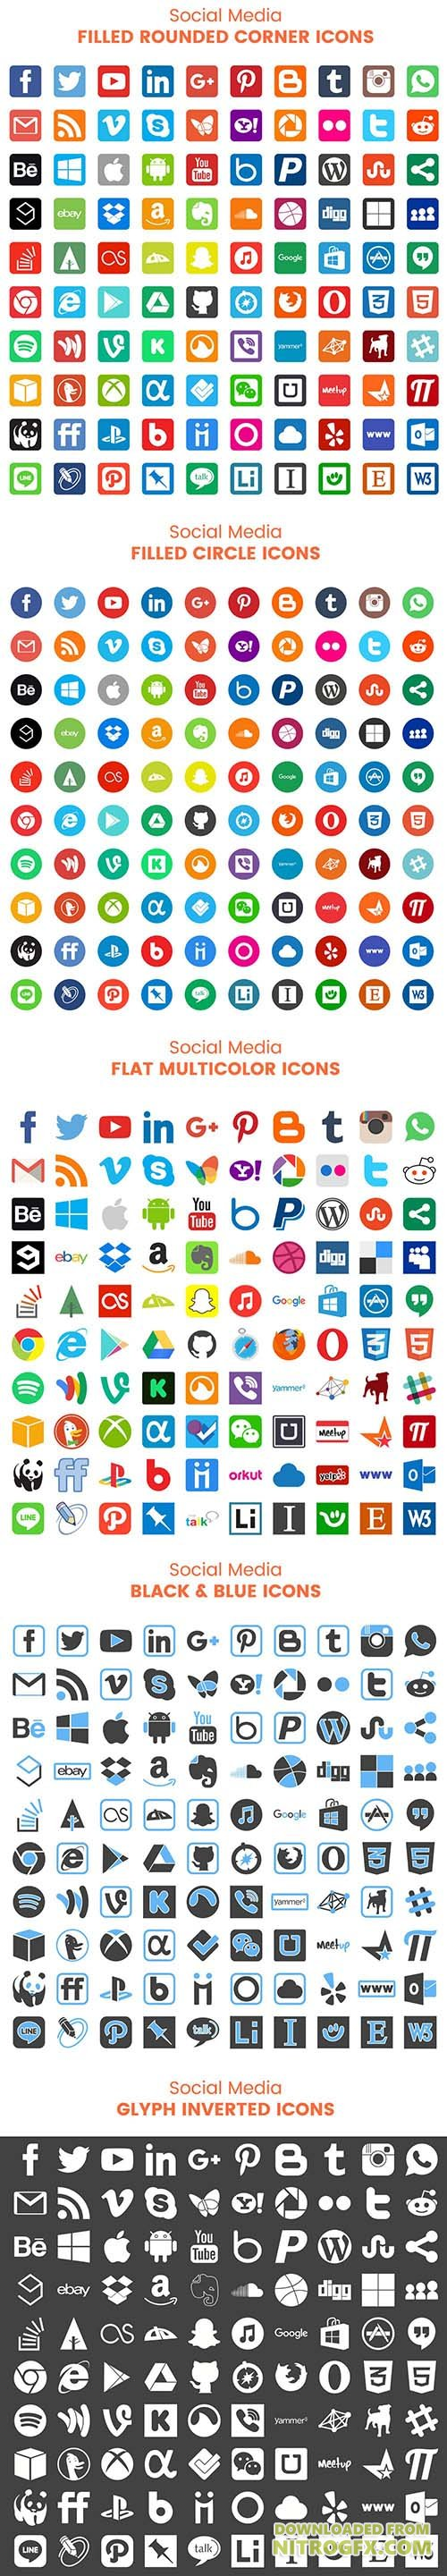 EPS, CDR, PNG Vector Web Icons - Social Media Icons Bundle 2017